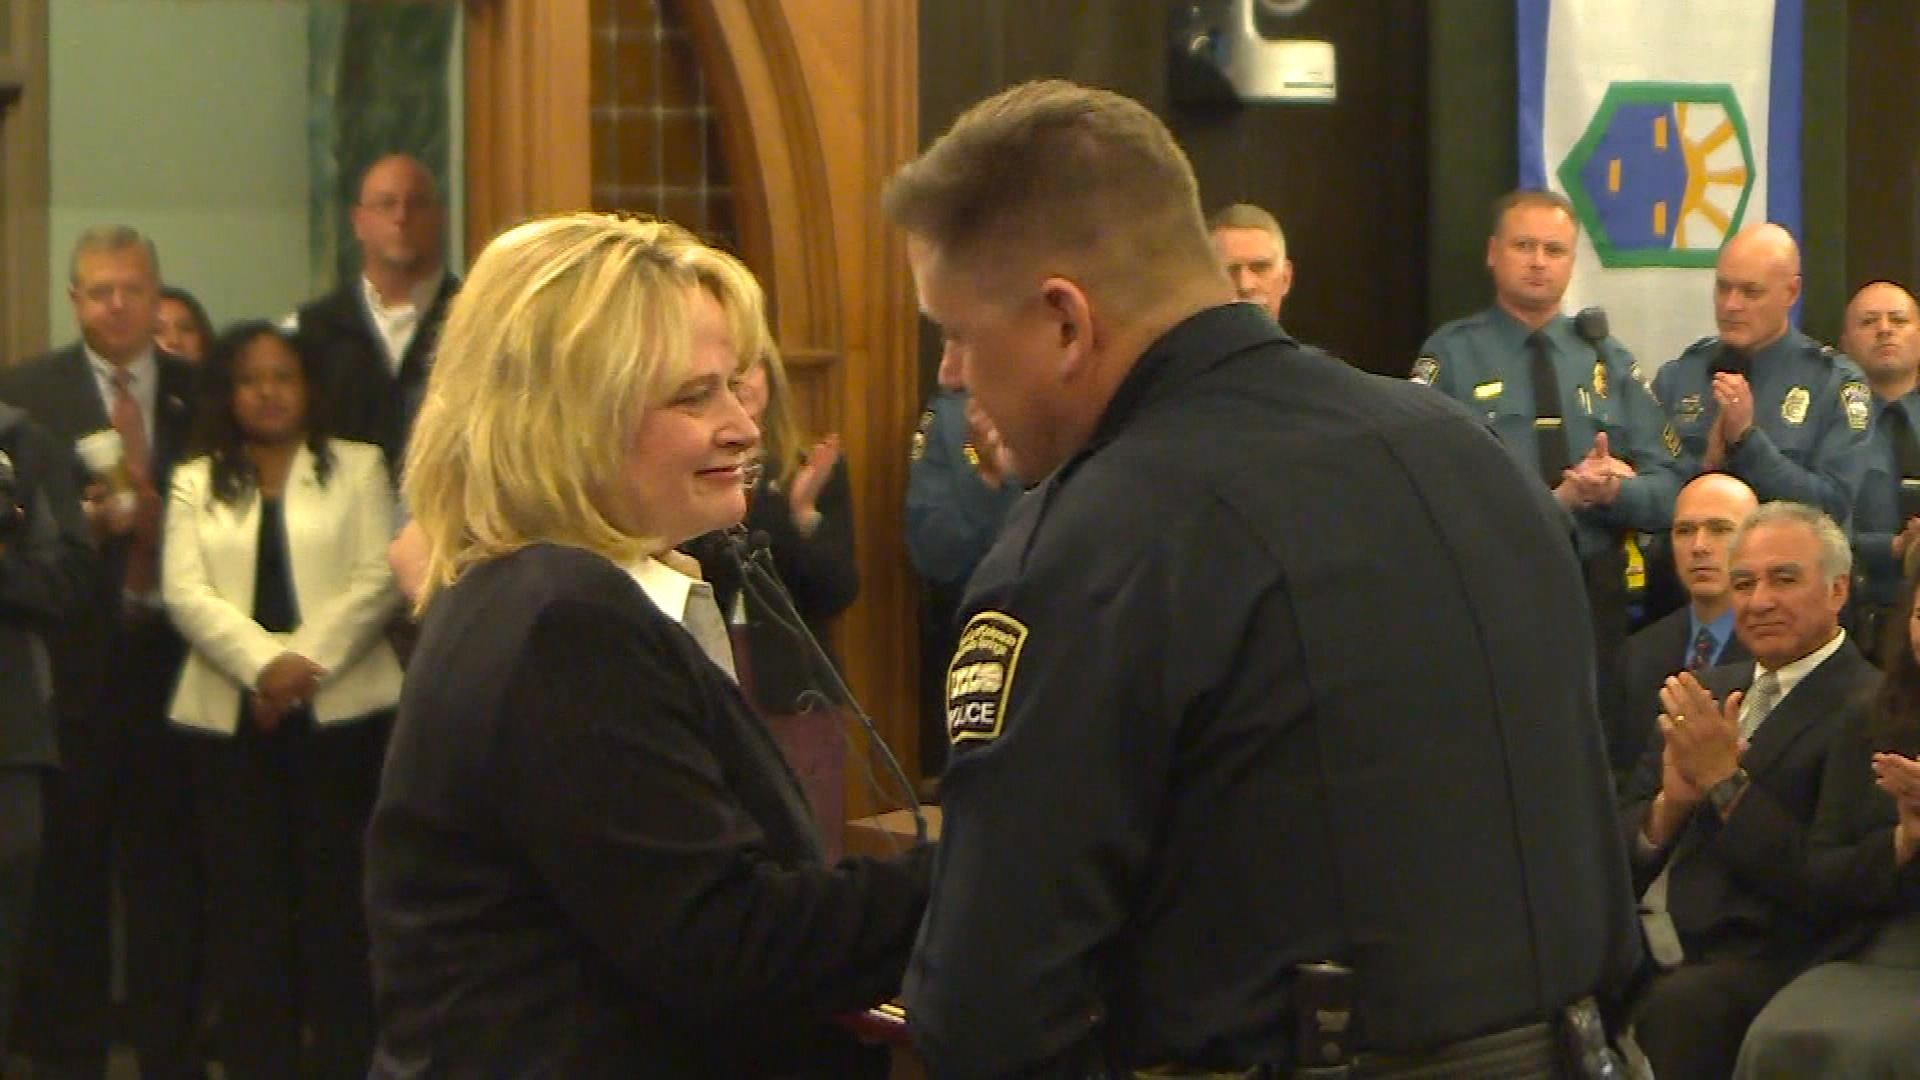 Attorney General Cynthia Coffman talks with a first responder (credit: CBS)